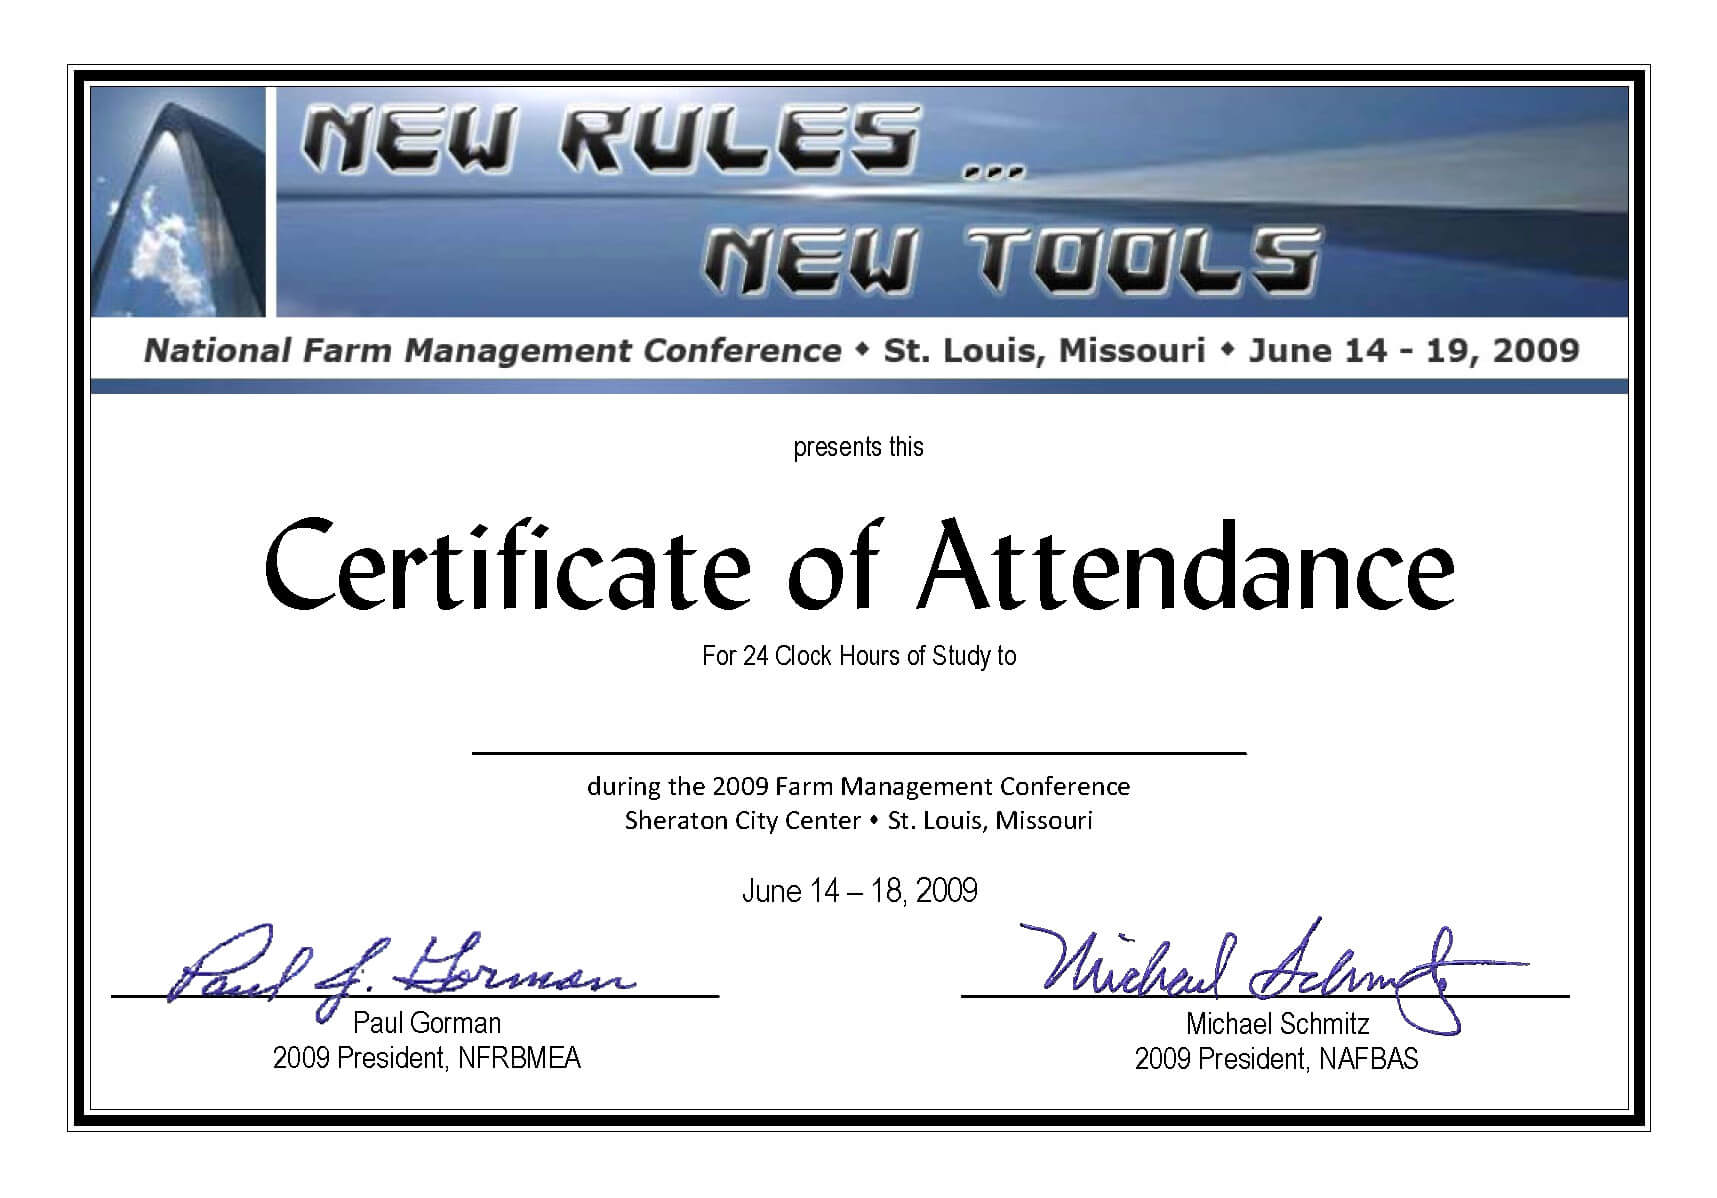 Templates Of Certificate Attendance Template Word For Regarding Conference Certificate Of Attendance Template